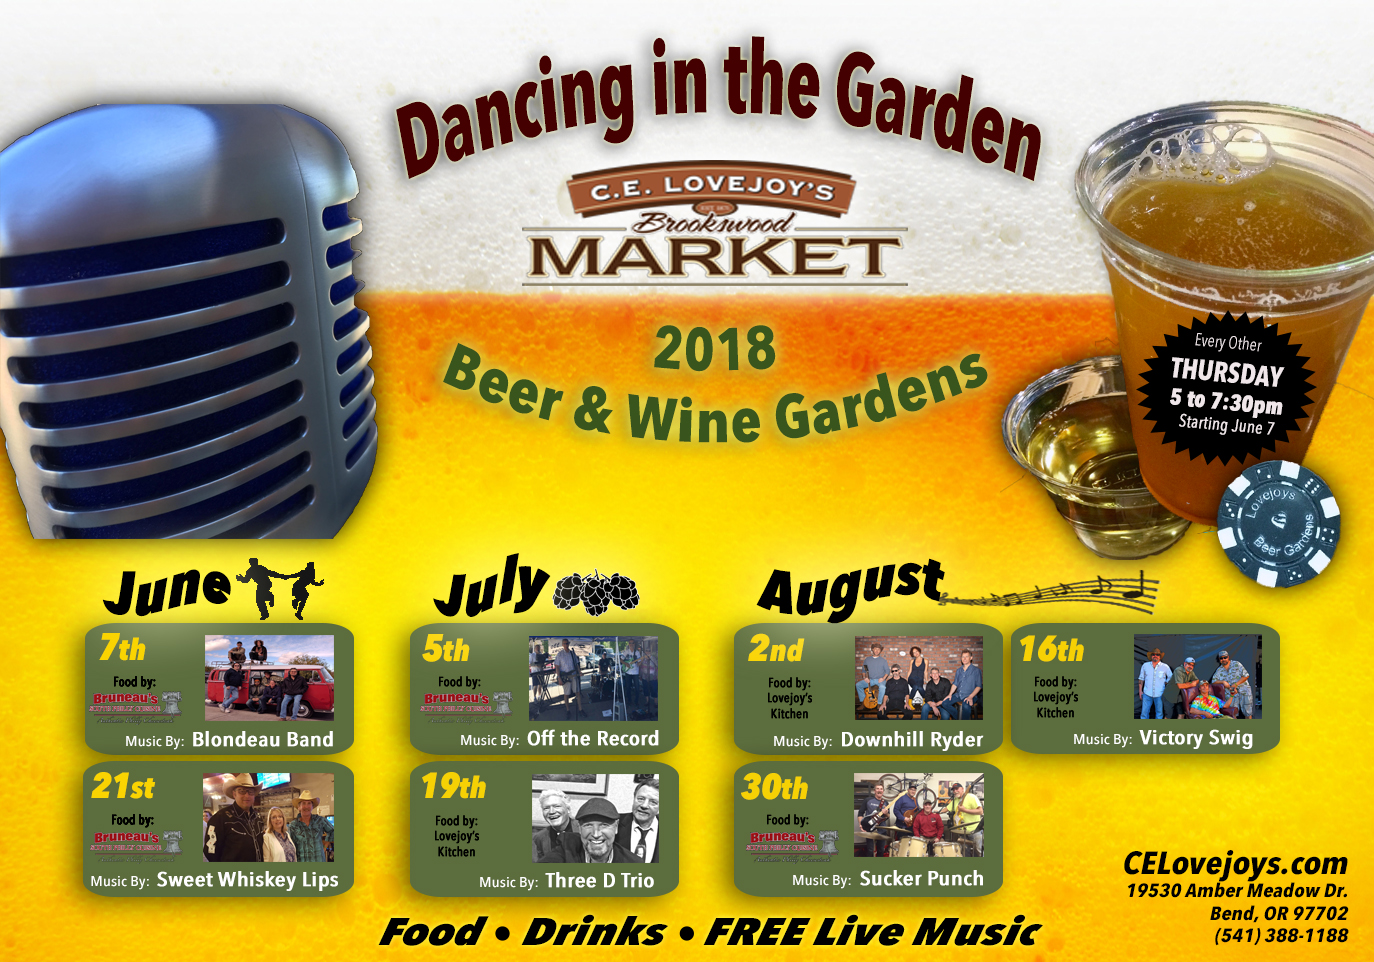 """""""Dancing in the Garden"""" Beer & Wine Garden w/Live Music at C.E. Lovejoy's Market @ C.E. Lovejoy's Brookswood Market 